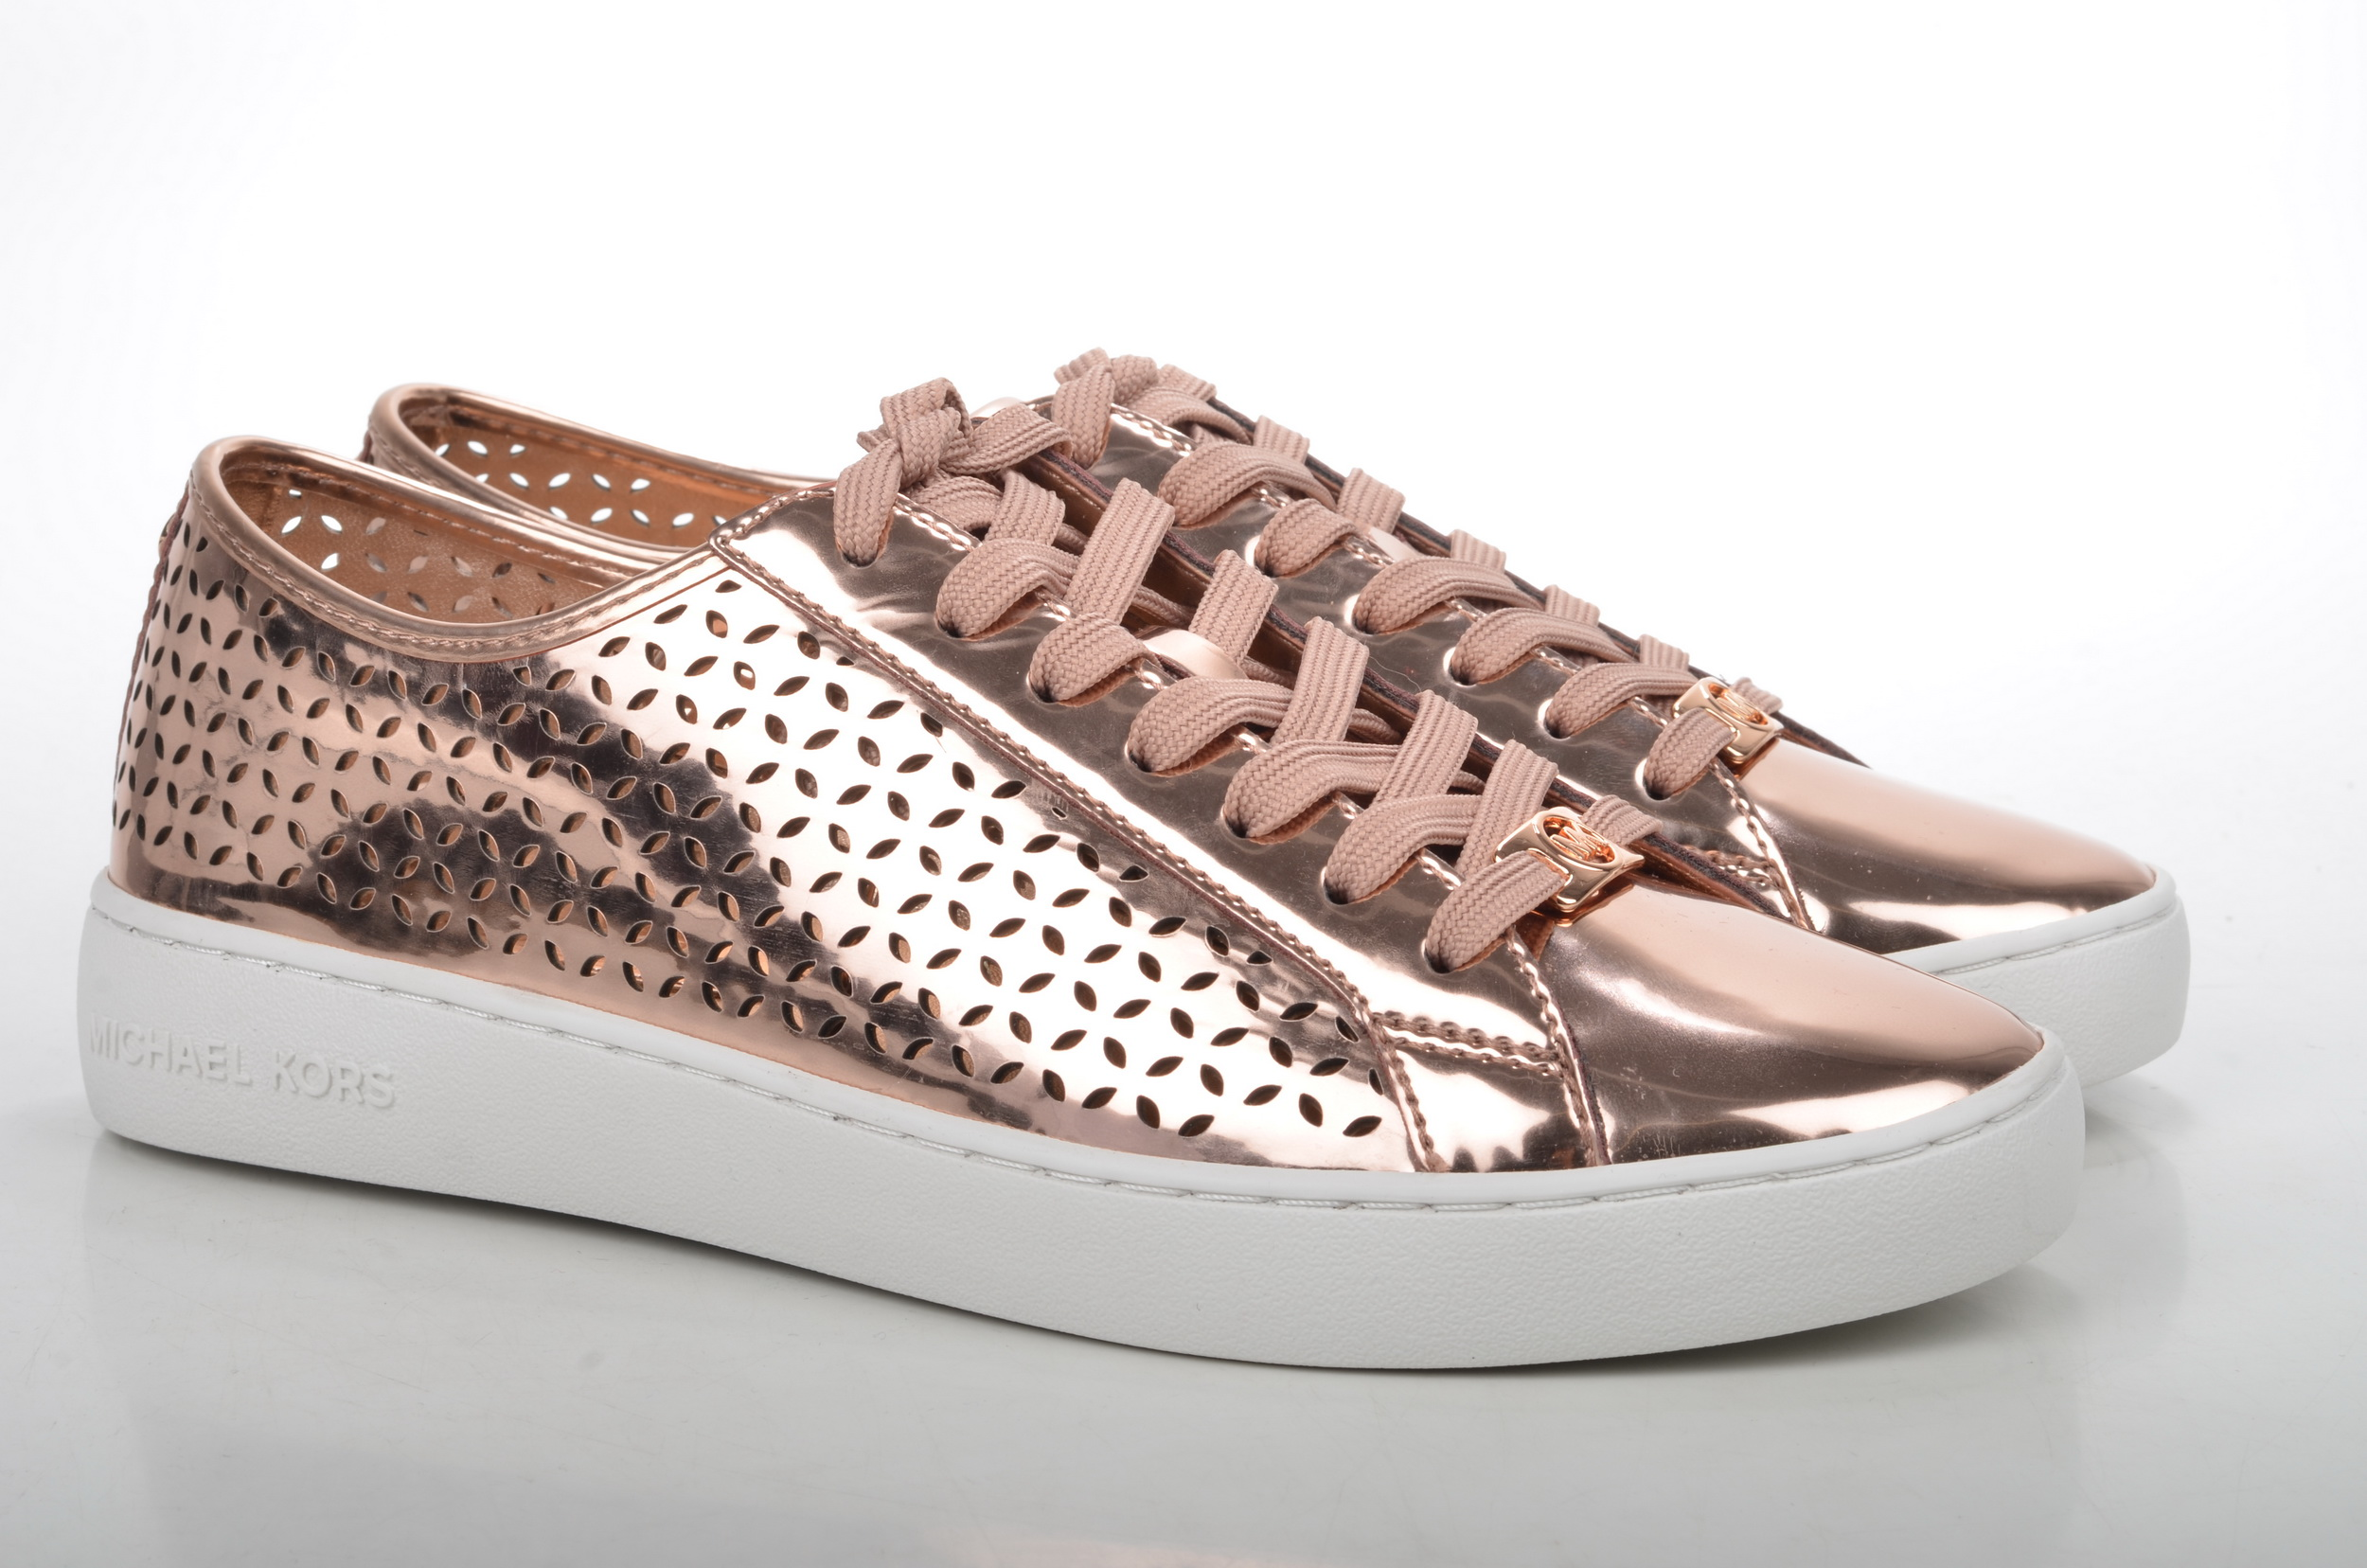 Michael Kors Shoes For Women